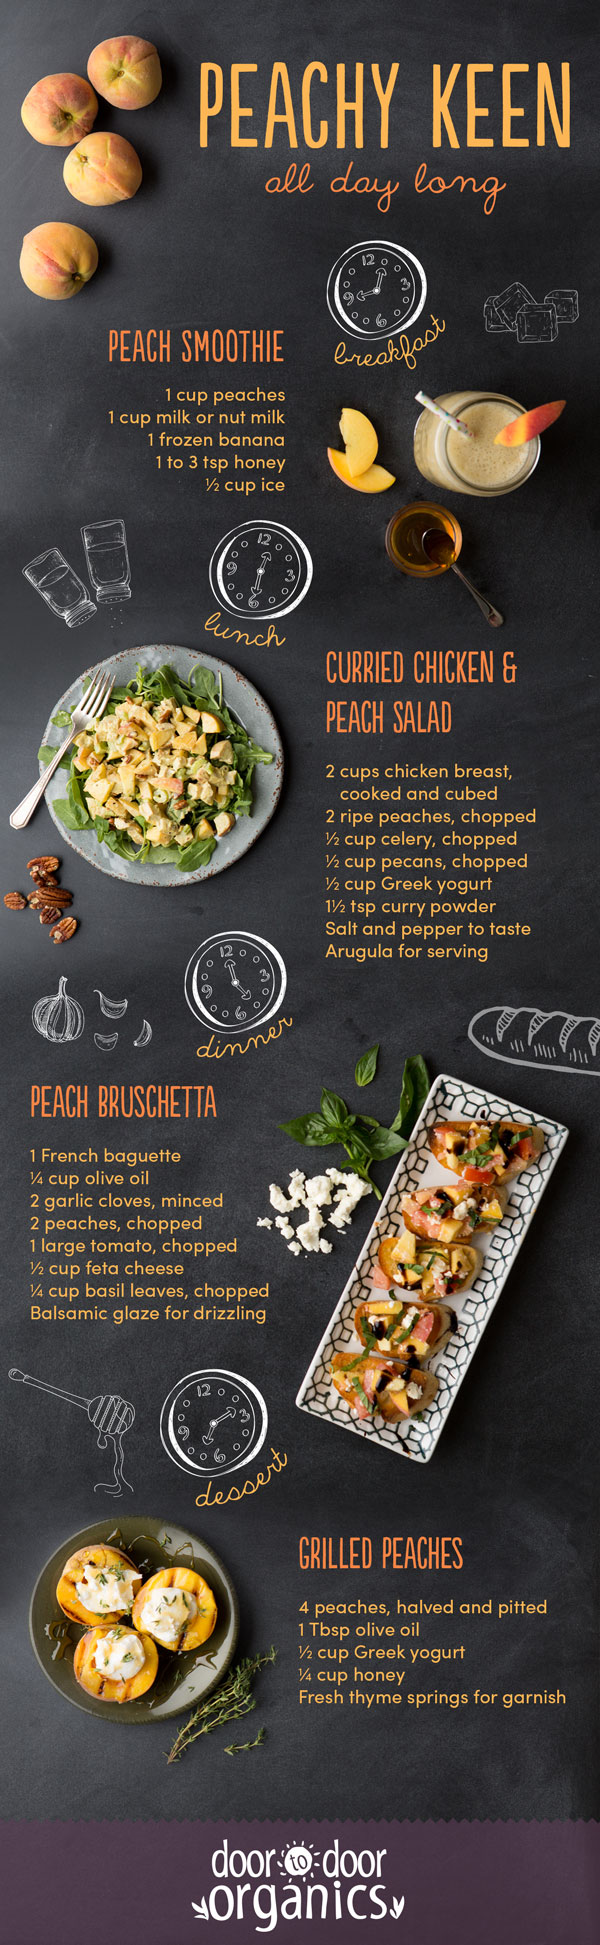 Peachy Keen Infographic